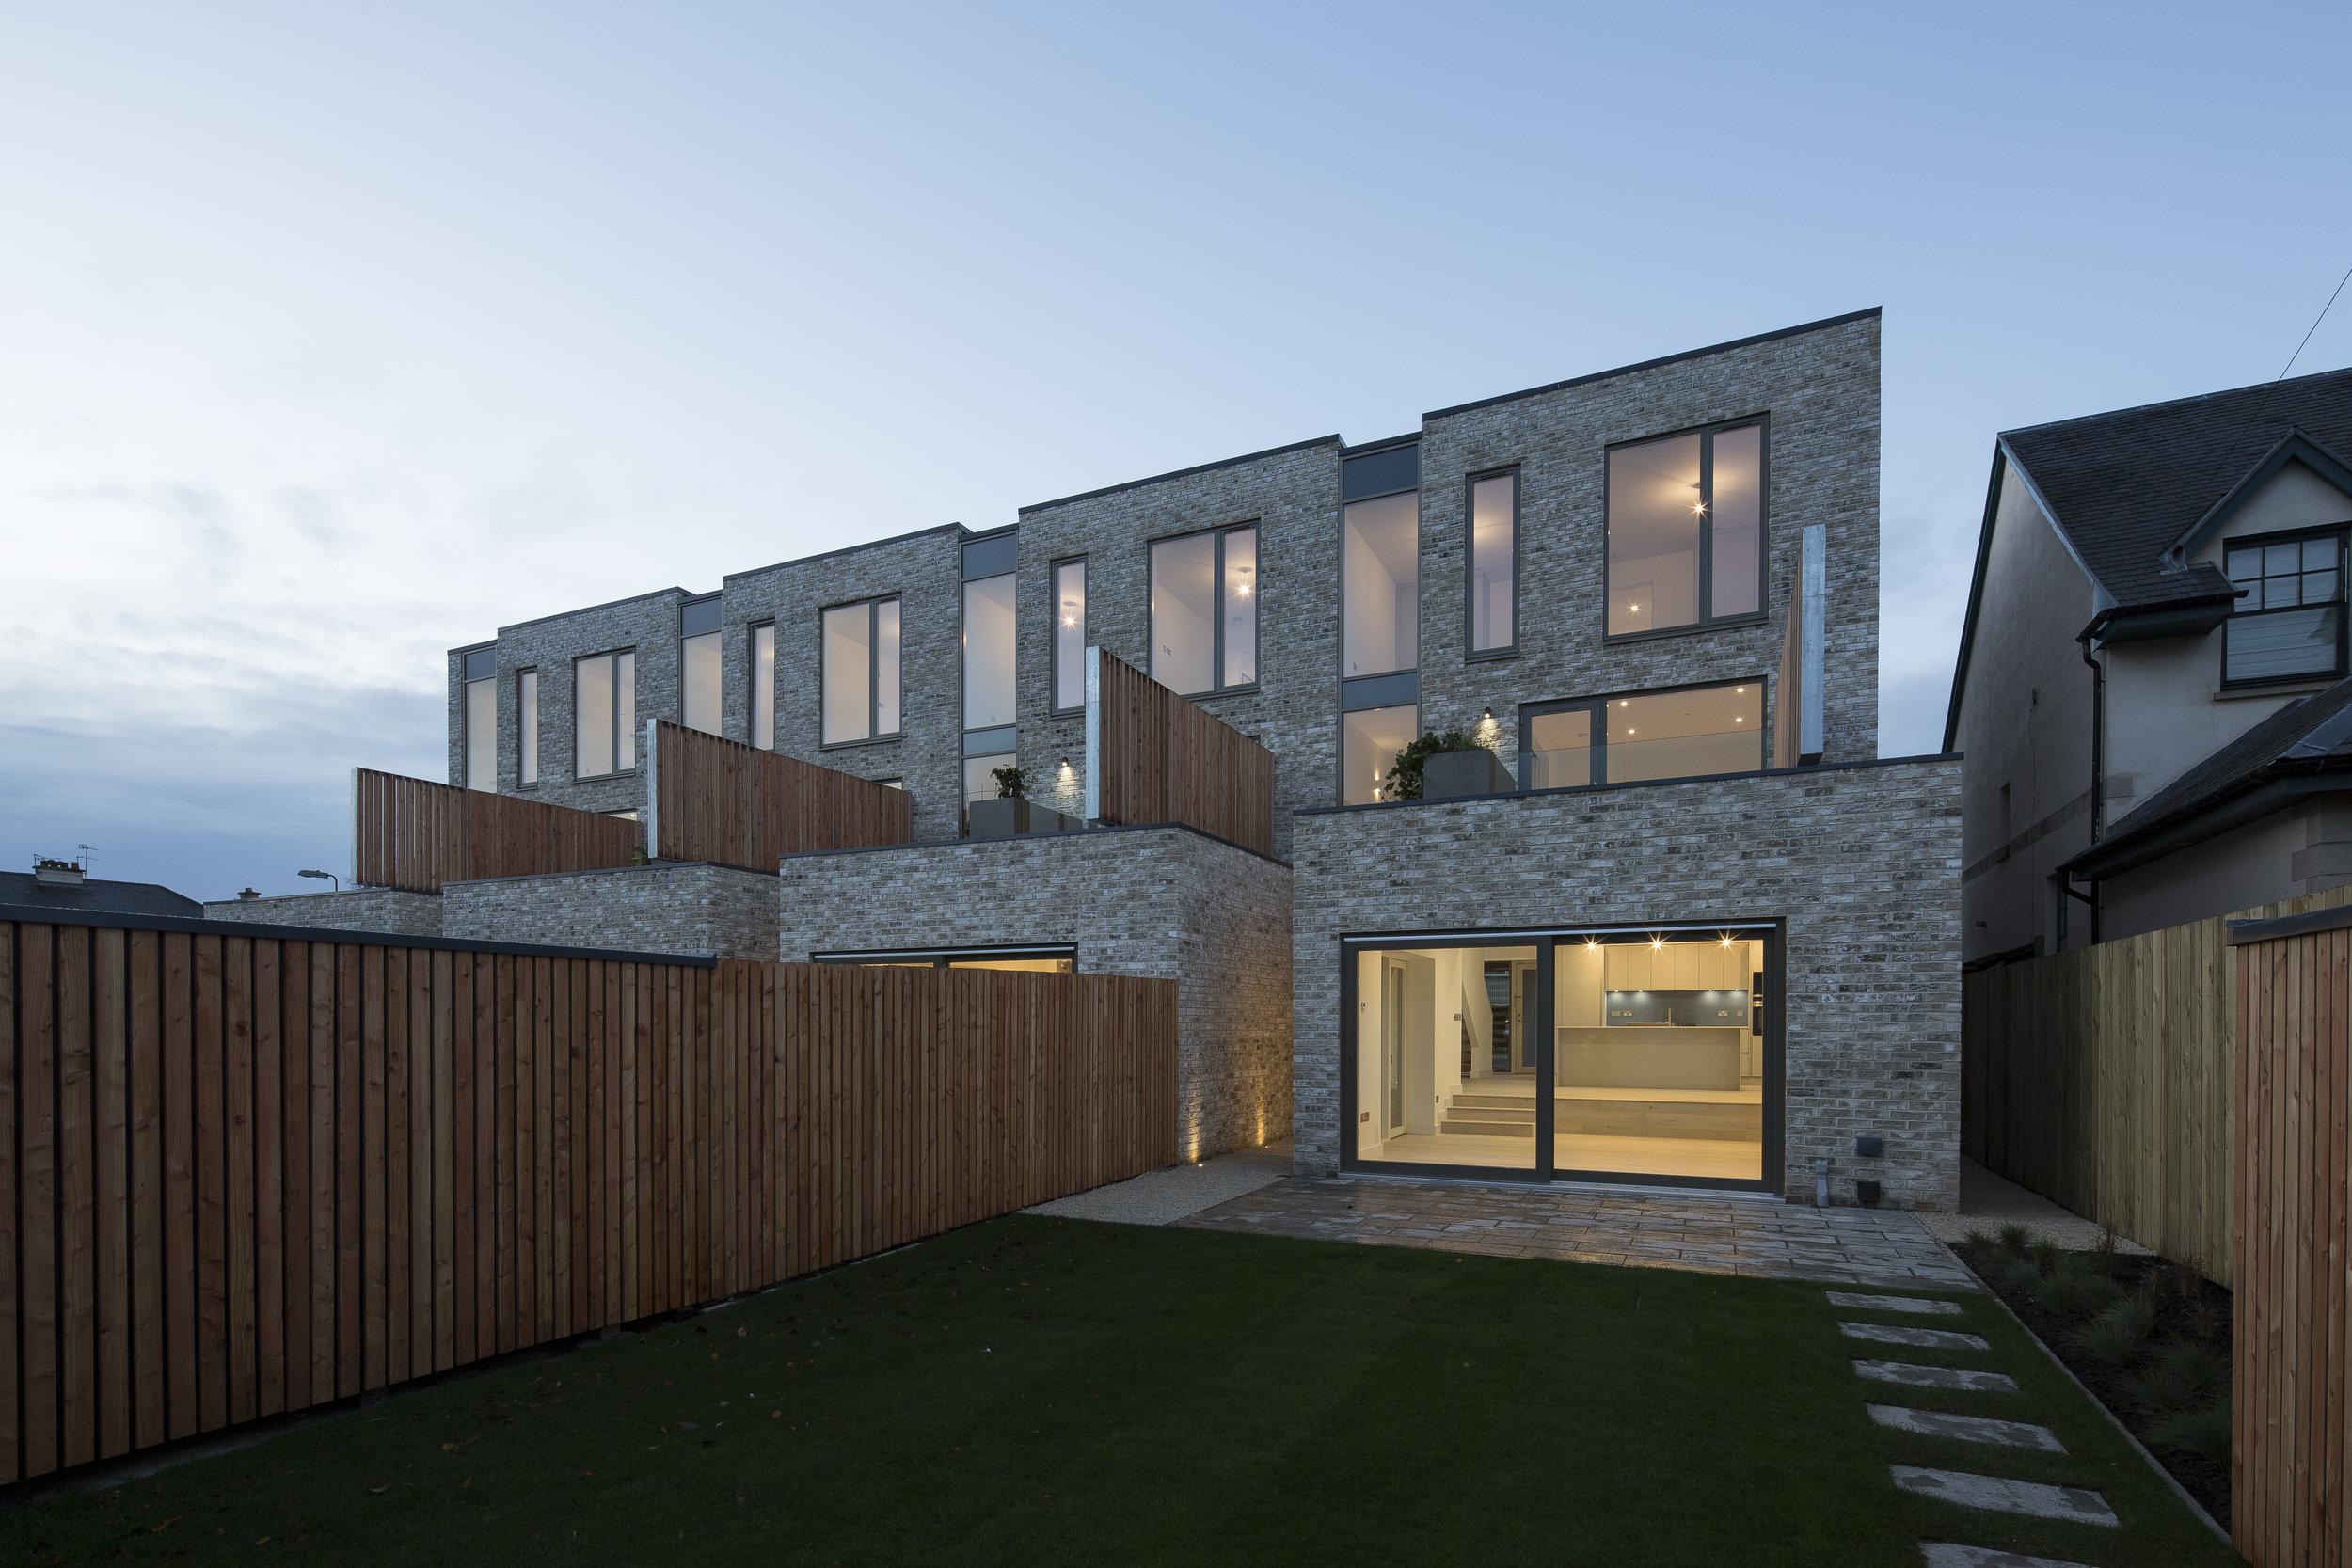 Woodhall Shortlisted in the 2018 Brick Awards - We're excited to announce that Woodhall Drive, our project with Glencairn Properties, has been shortlisted in the 2018 Brick Awards in the Small Housing Development category!